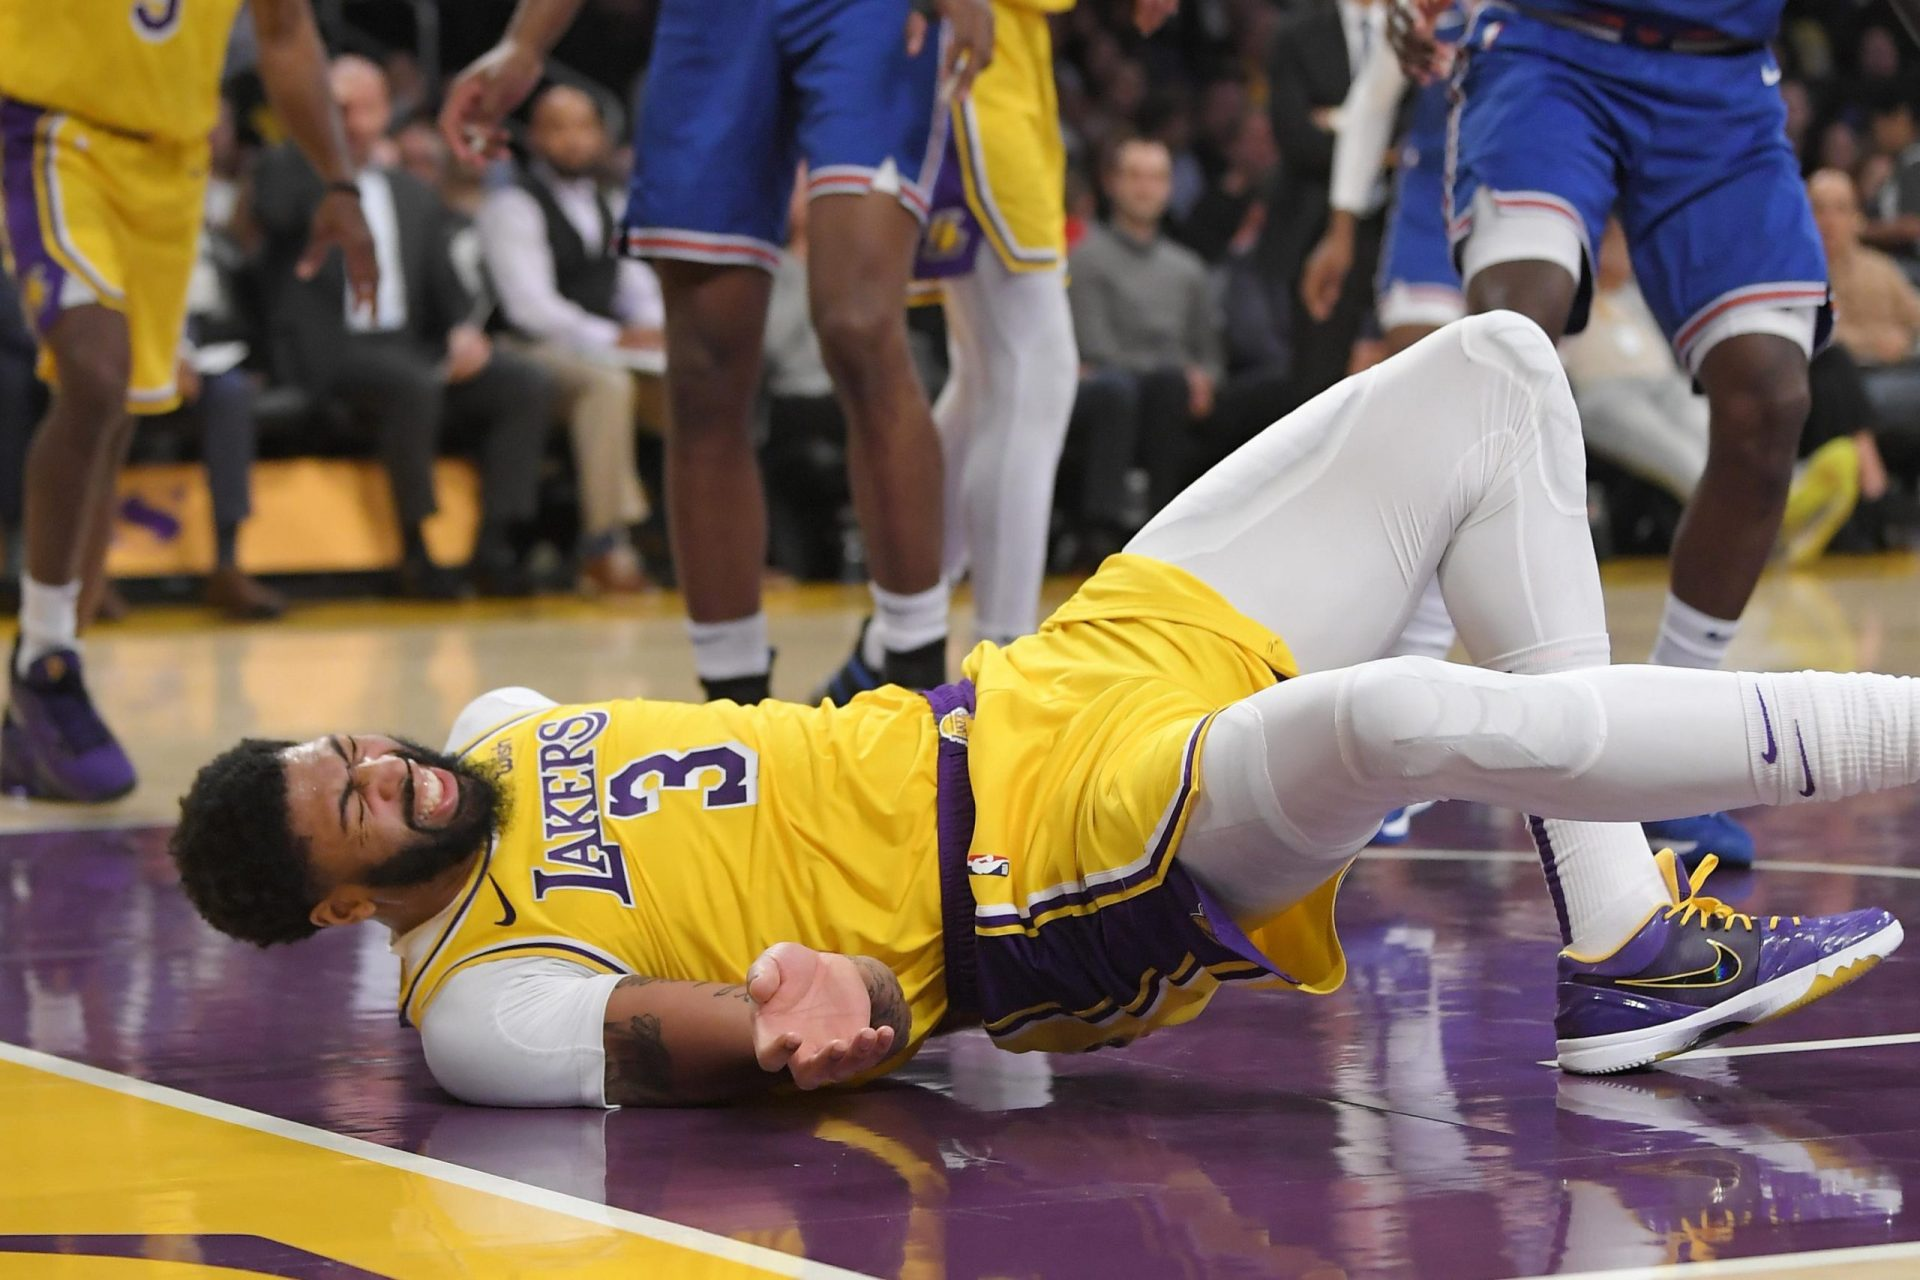 Anthony Davis sidelined with a calf contusion, set to miss game vs. Wolves - THE SPORTS ROOM